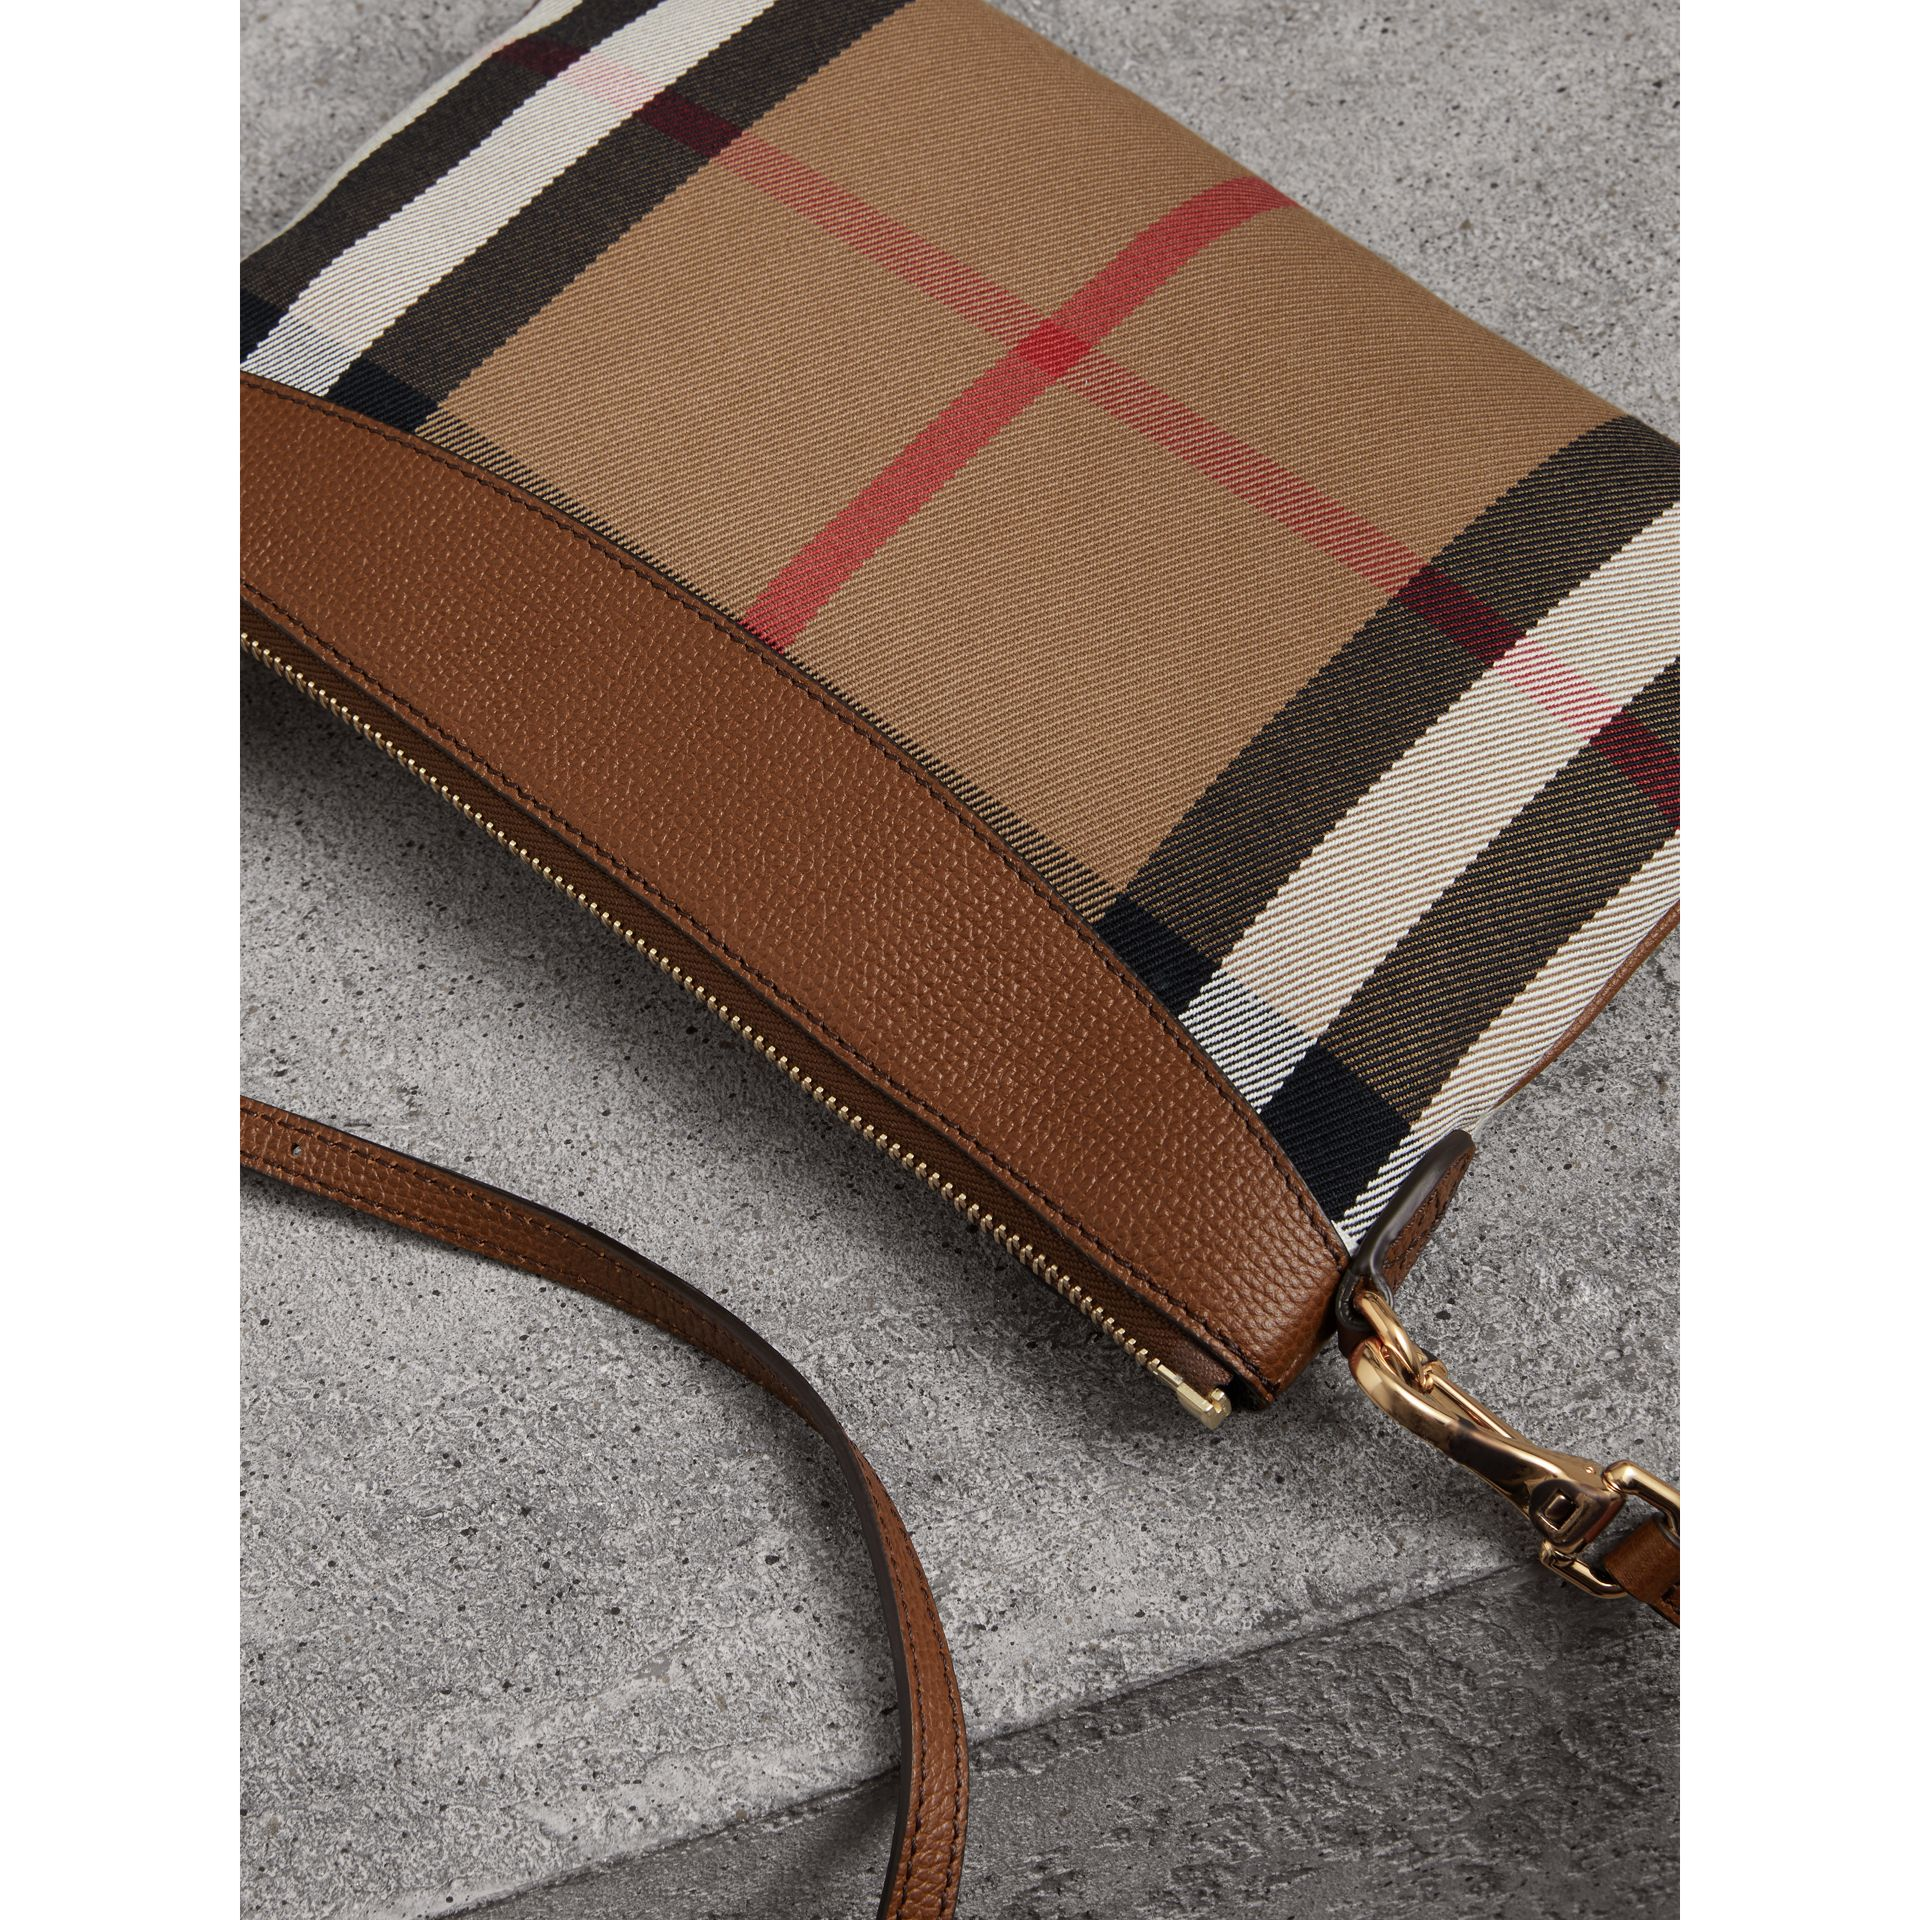 House Check and Leather Clutch Bag in Tan - Women | Burberry Australia - gallery image 3